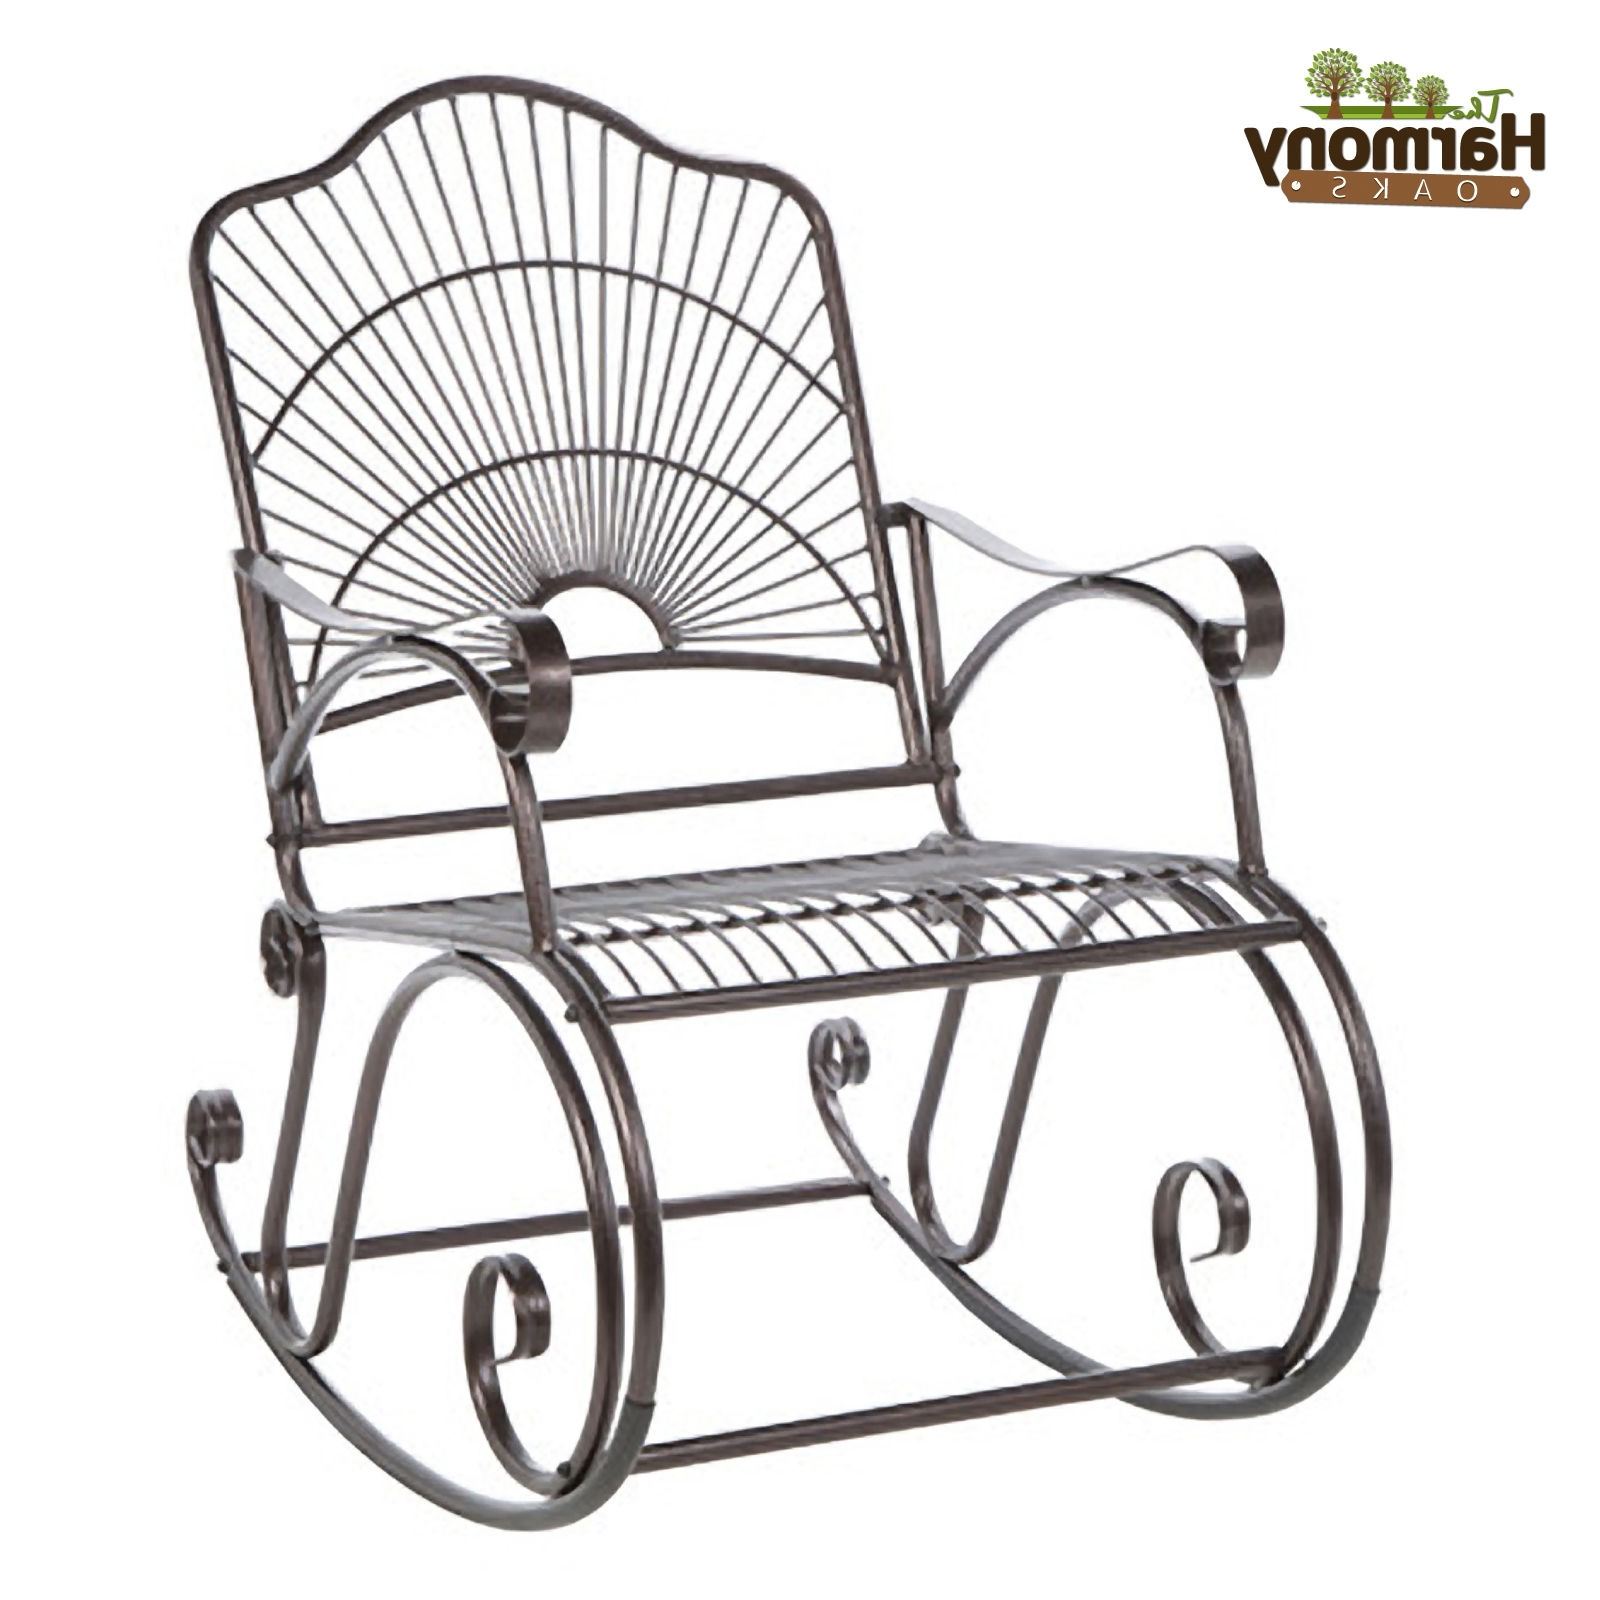 Iron Rocking Patio Chairs Throughout Widely Used Rocker Wrought Iron Outdoor Patio Porch New Furniture Wrought Iron (Gallery 10 of 20)